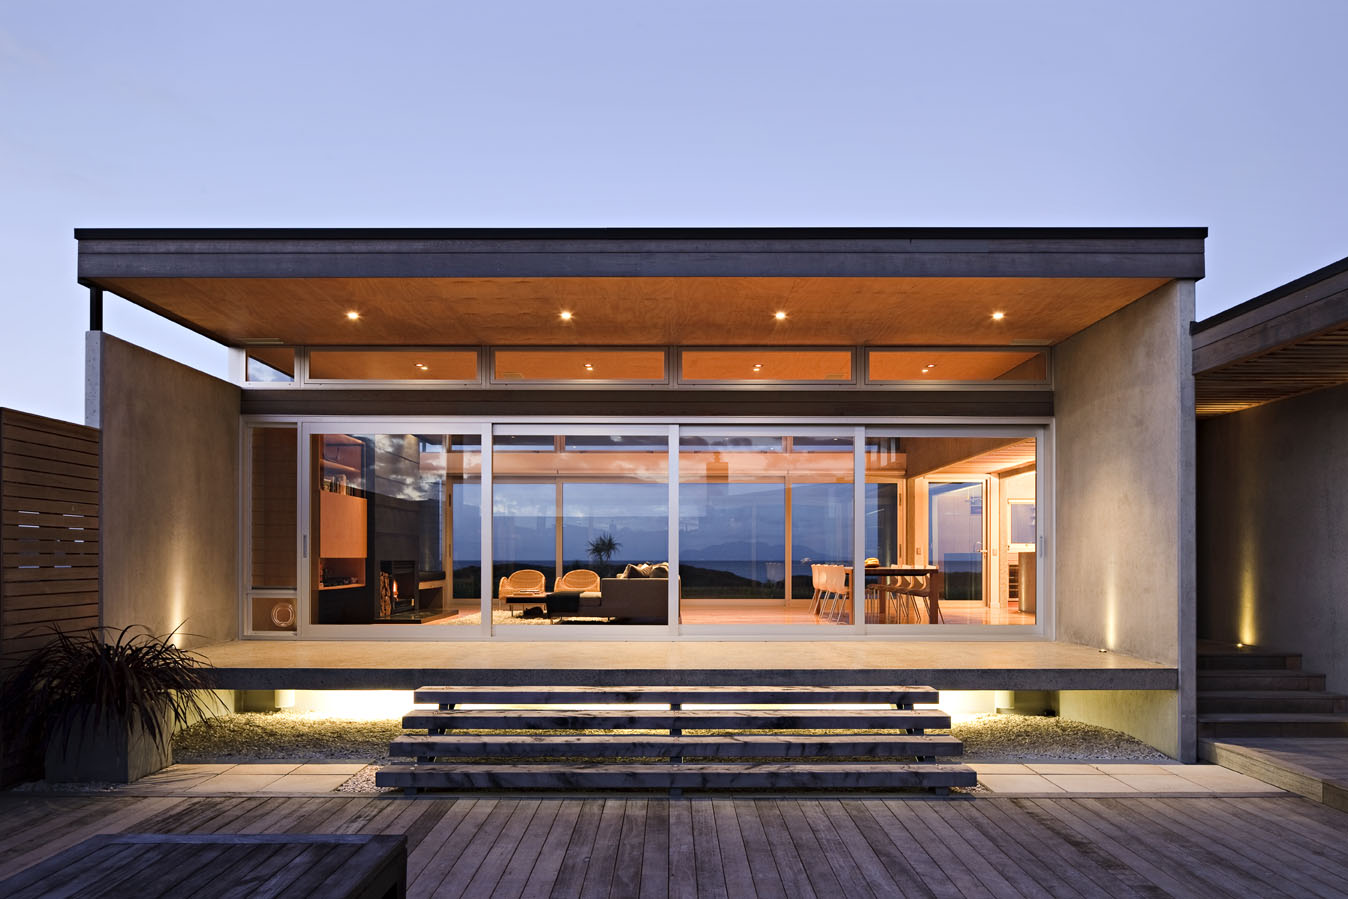 Omaha beach house shelby white the blog of artist - Shipping container homes designs ...